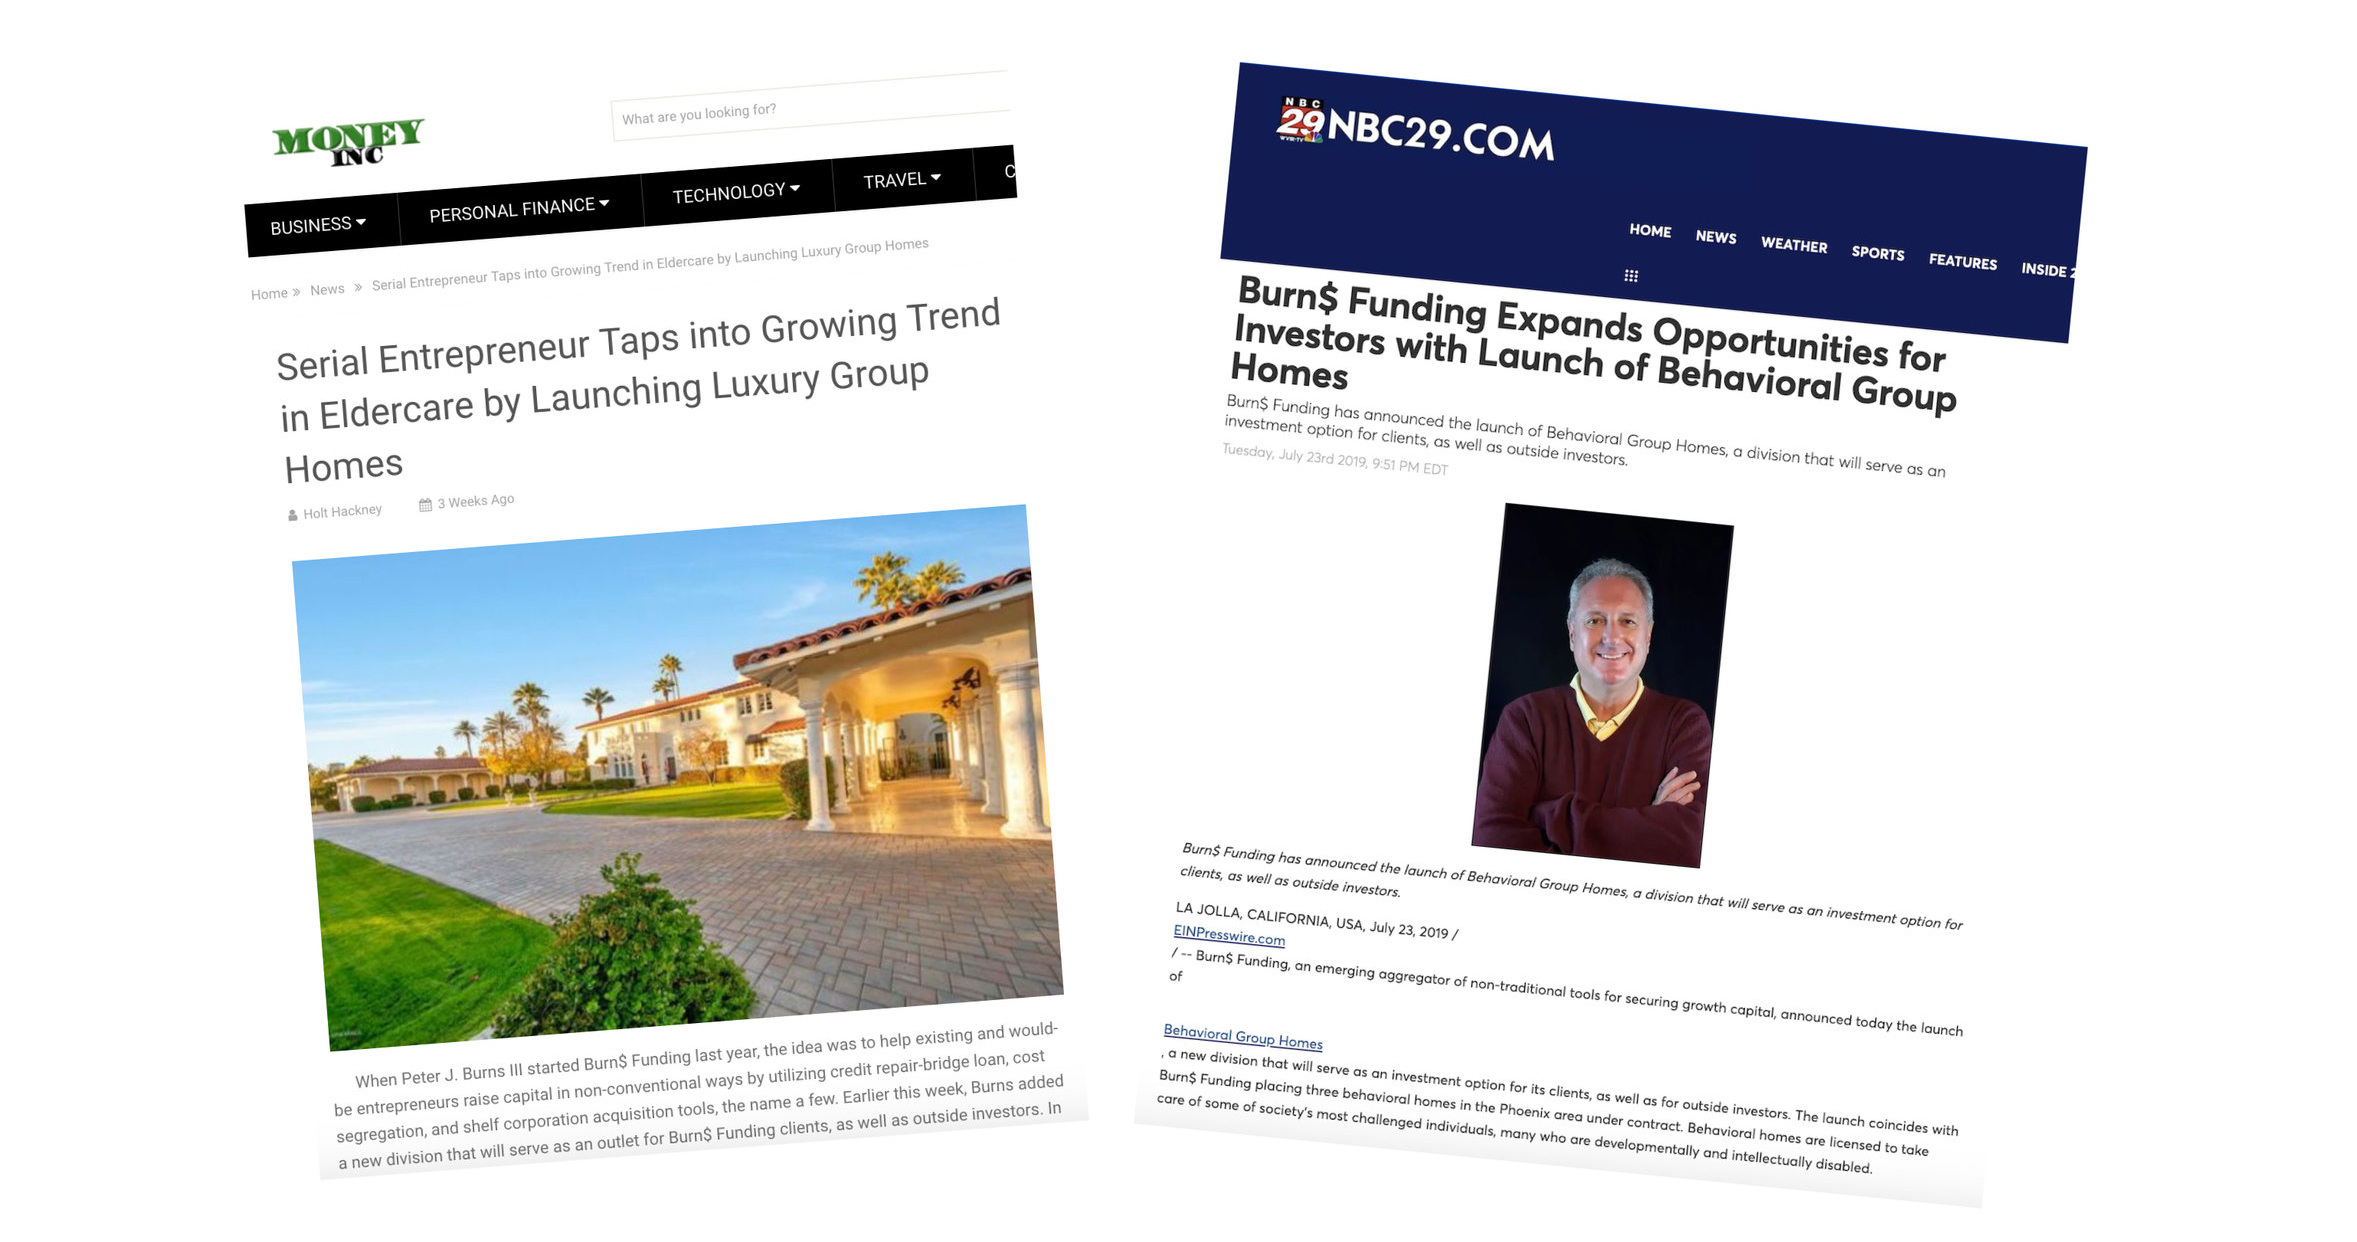 "MONEY Inc :  ""Serial Entrepreneur Taps into Growing Trend in Eldercare by Launching Luxury Group Homes""  (July 2019)   NBC29 :  ""Burn$ Funding Expands Opportunities for Investors with Launch of Behavioral Group Homes""  (July 2019)"